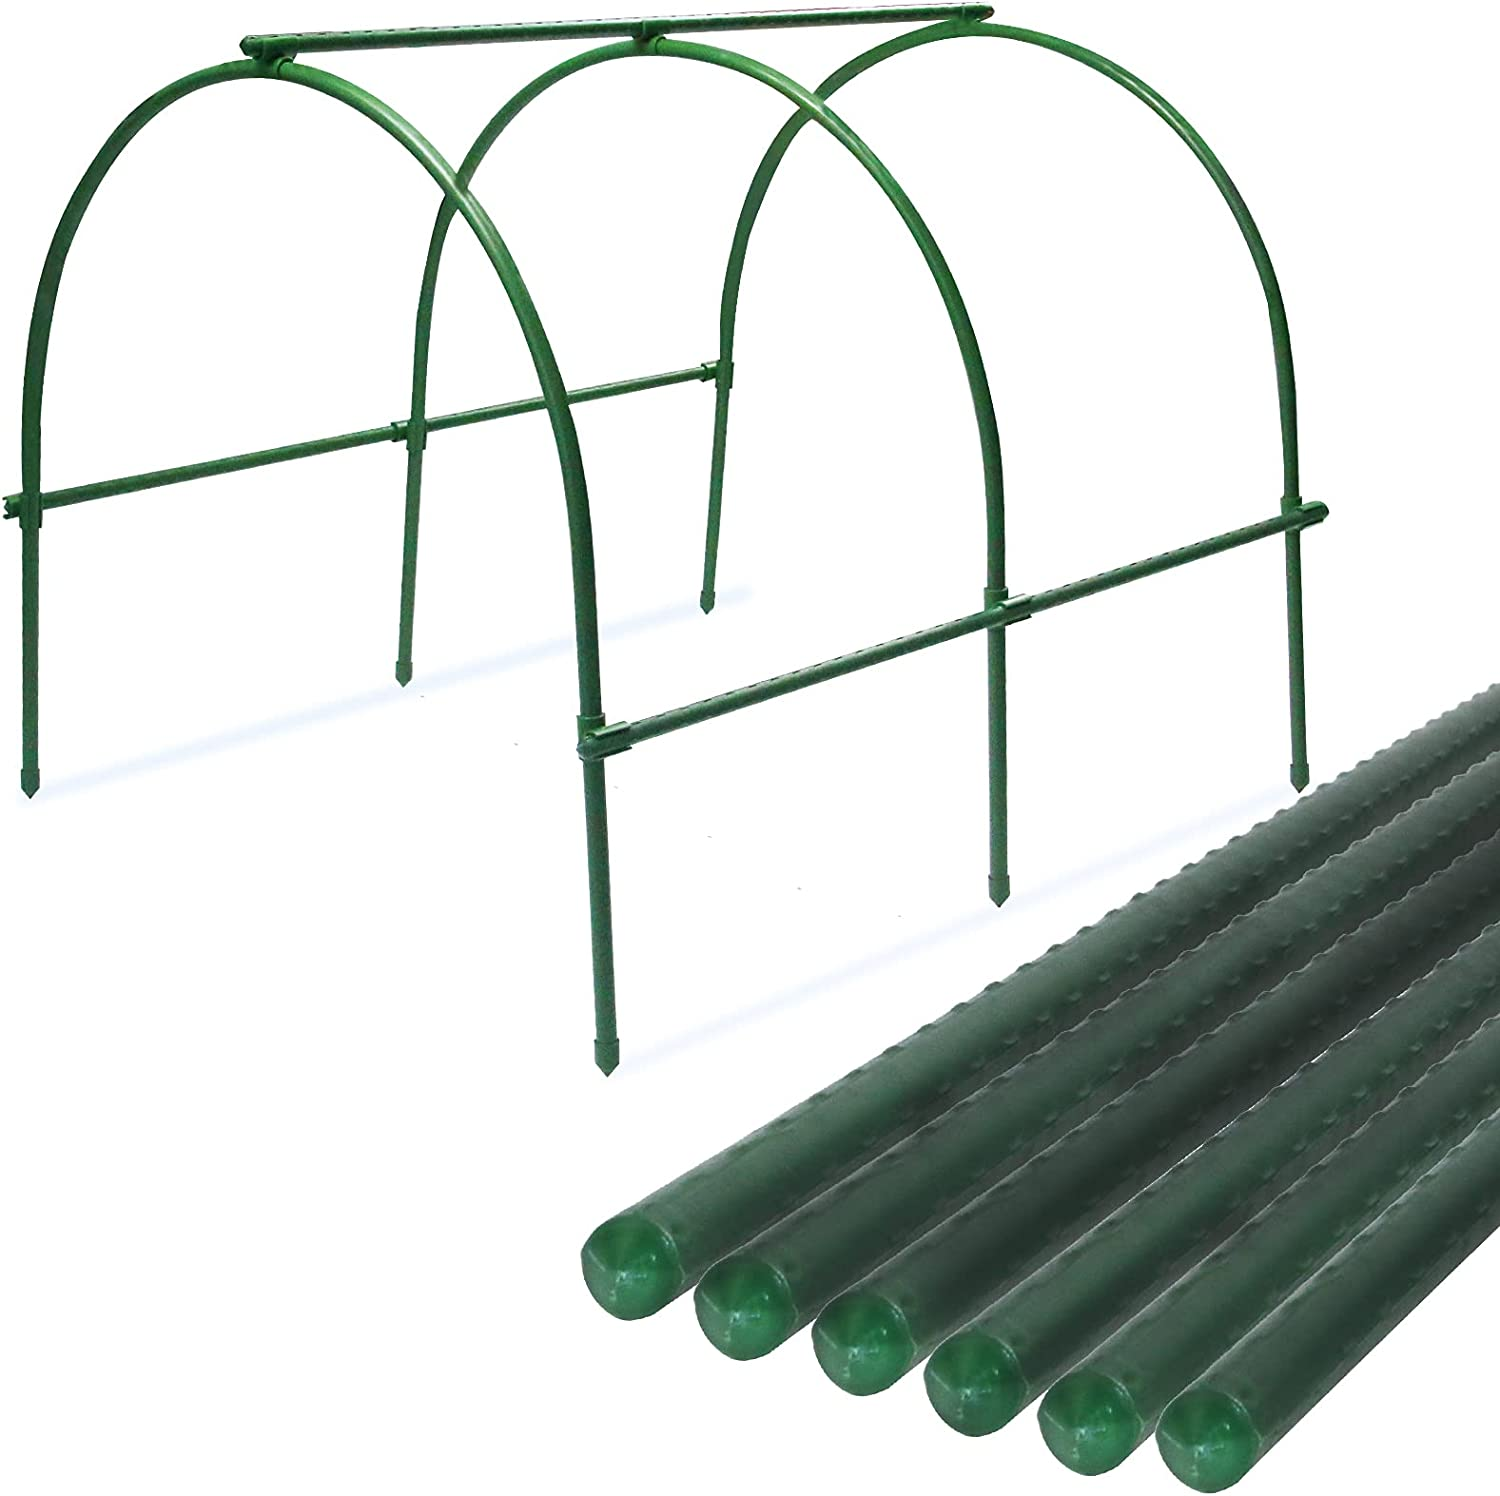 Greenhouse Hoops Rust for Plant Cover Support, Tunnel Hot House Plant Supports for Garden Fabric Stakes, Garden Hoops for Row Cover Growing Frame with Plastic Coated (11mm, 6 Pack)